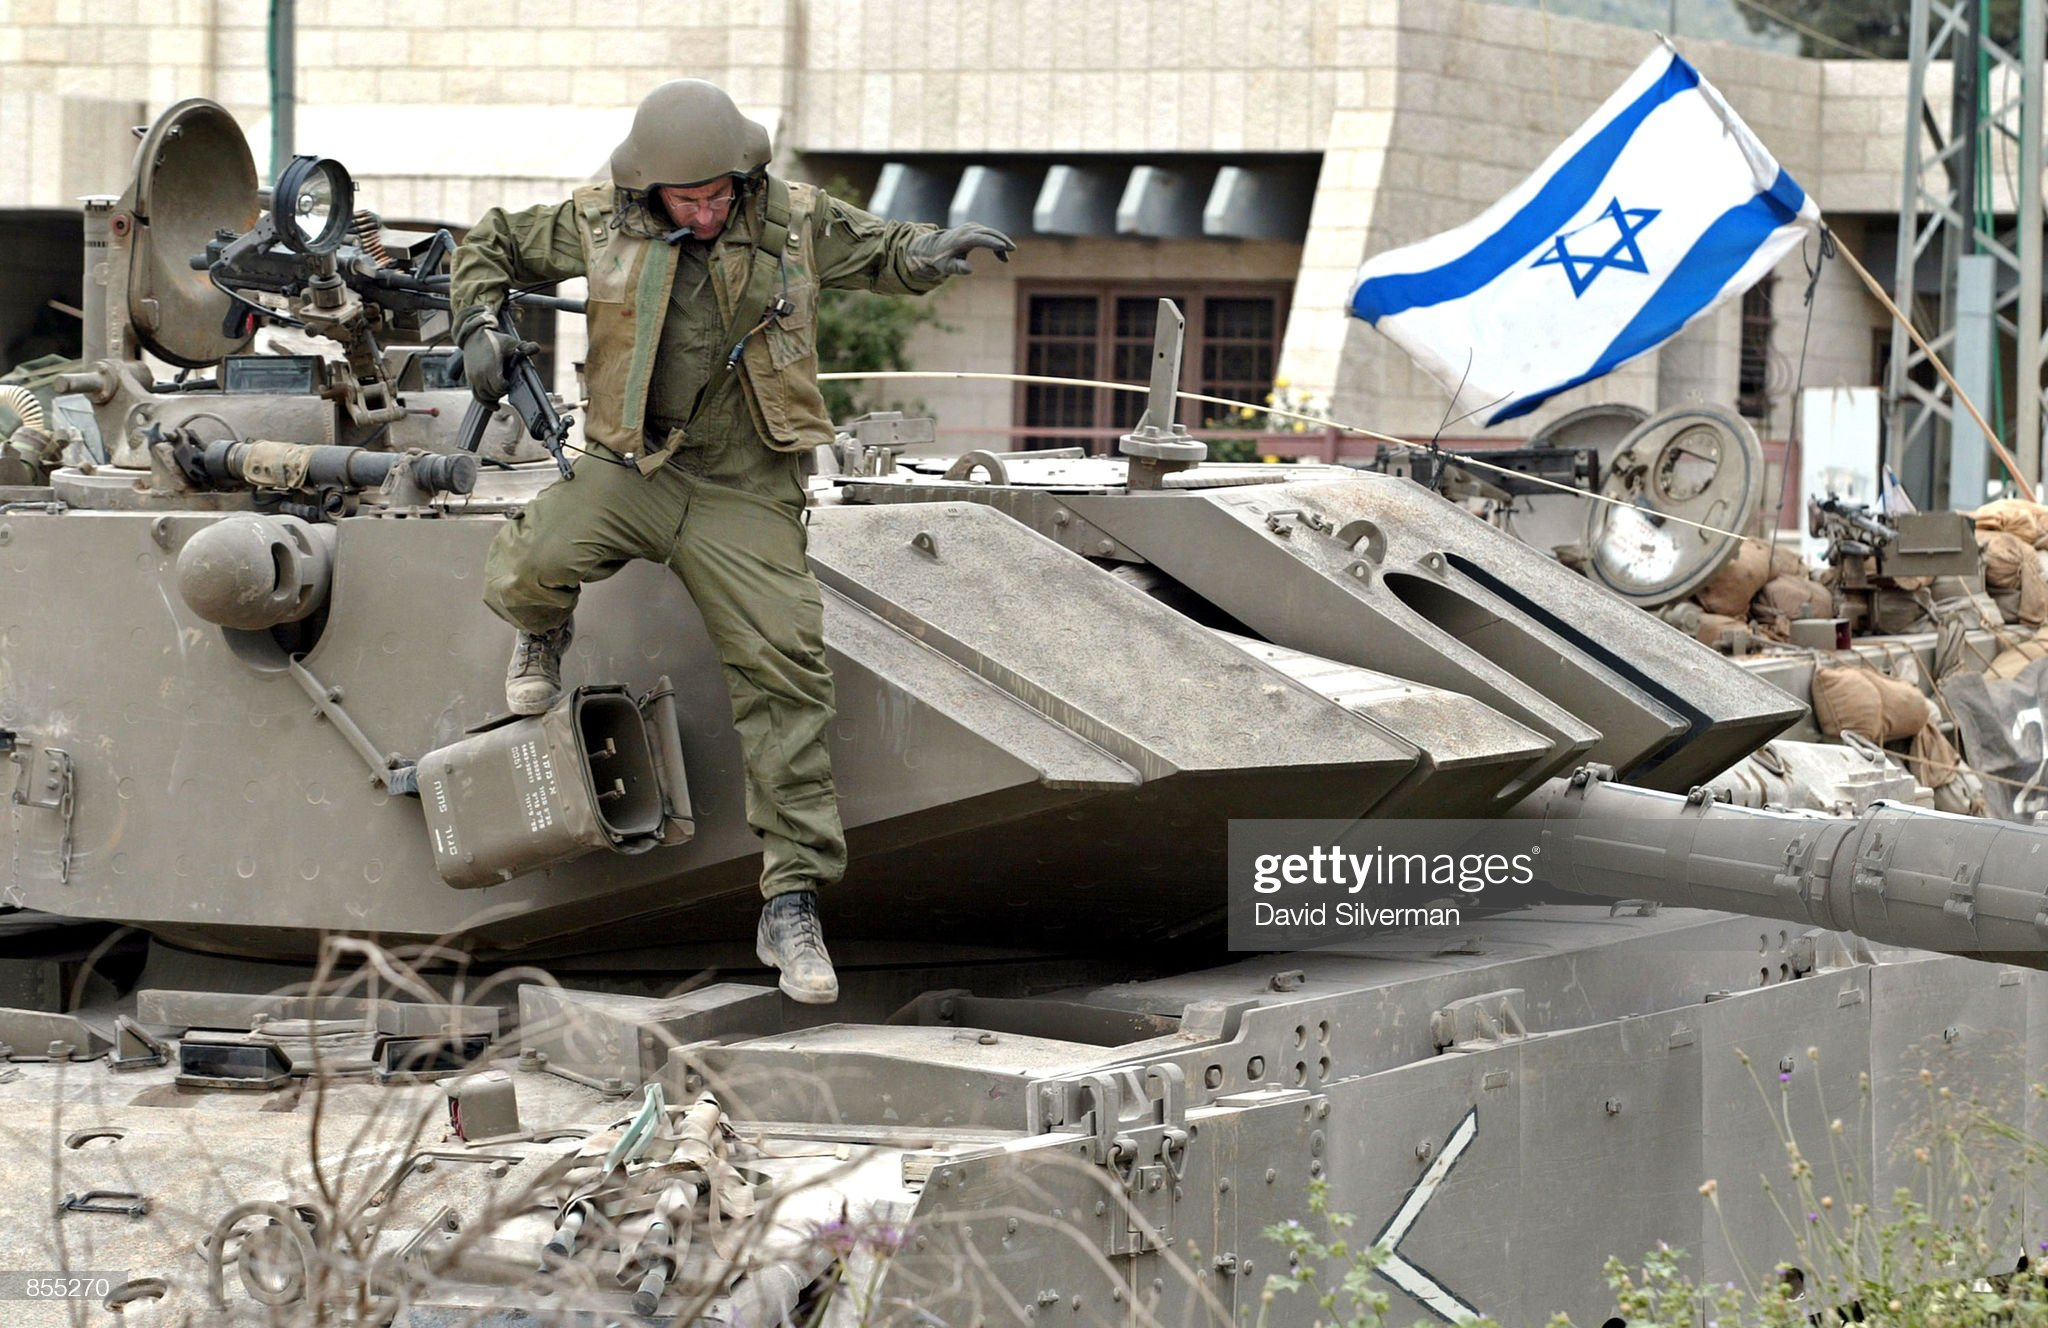 https://media.gettyimages.com/photos/an-israeli-soldier-climbs-down-from-his-merkava-tank-where-his-unit-picture-id855270?s=2048x2048